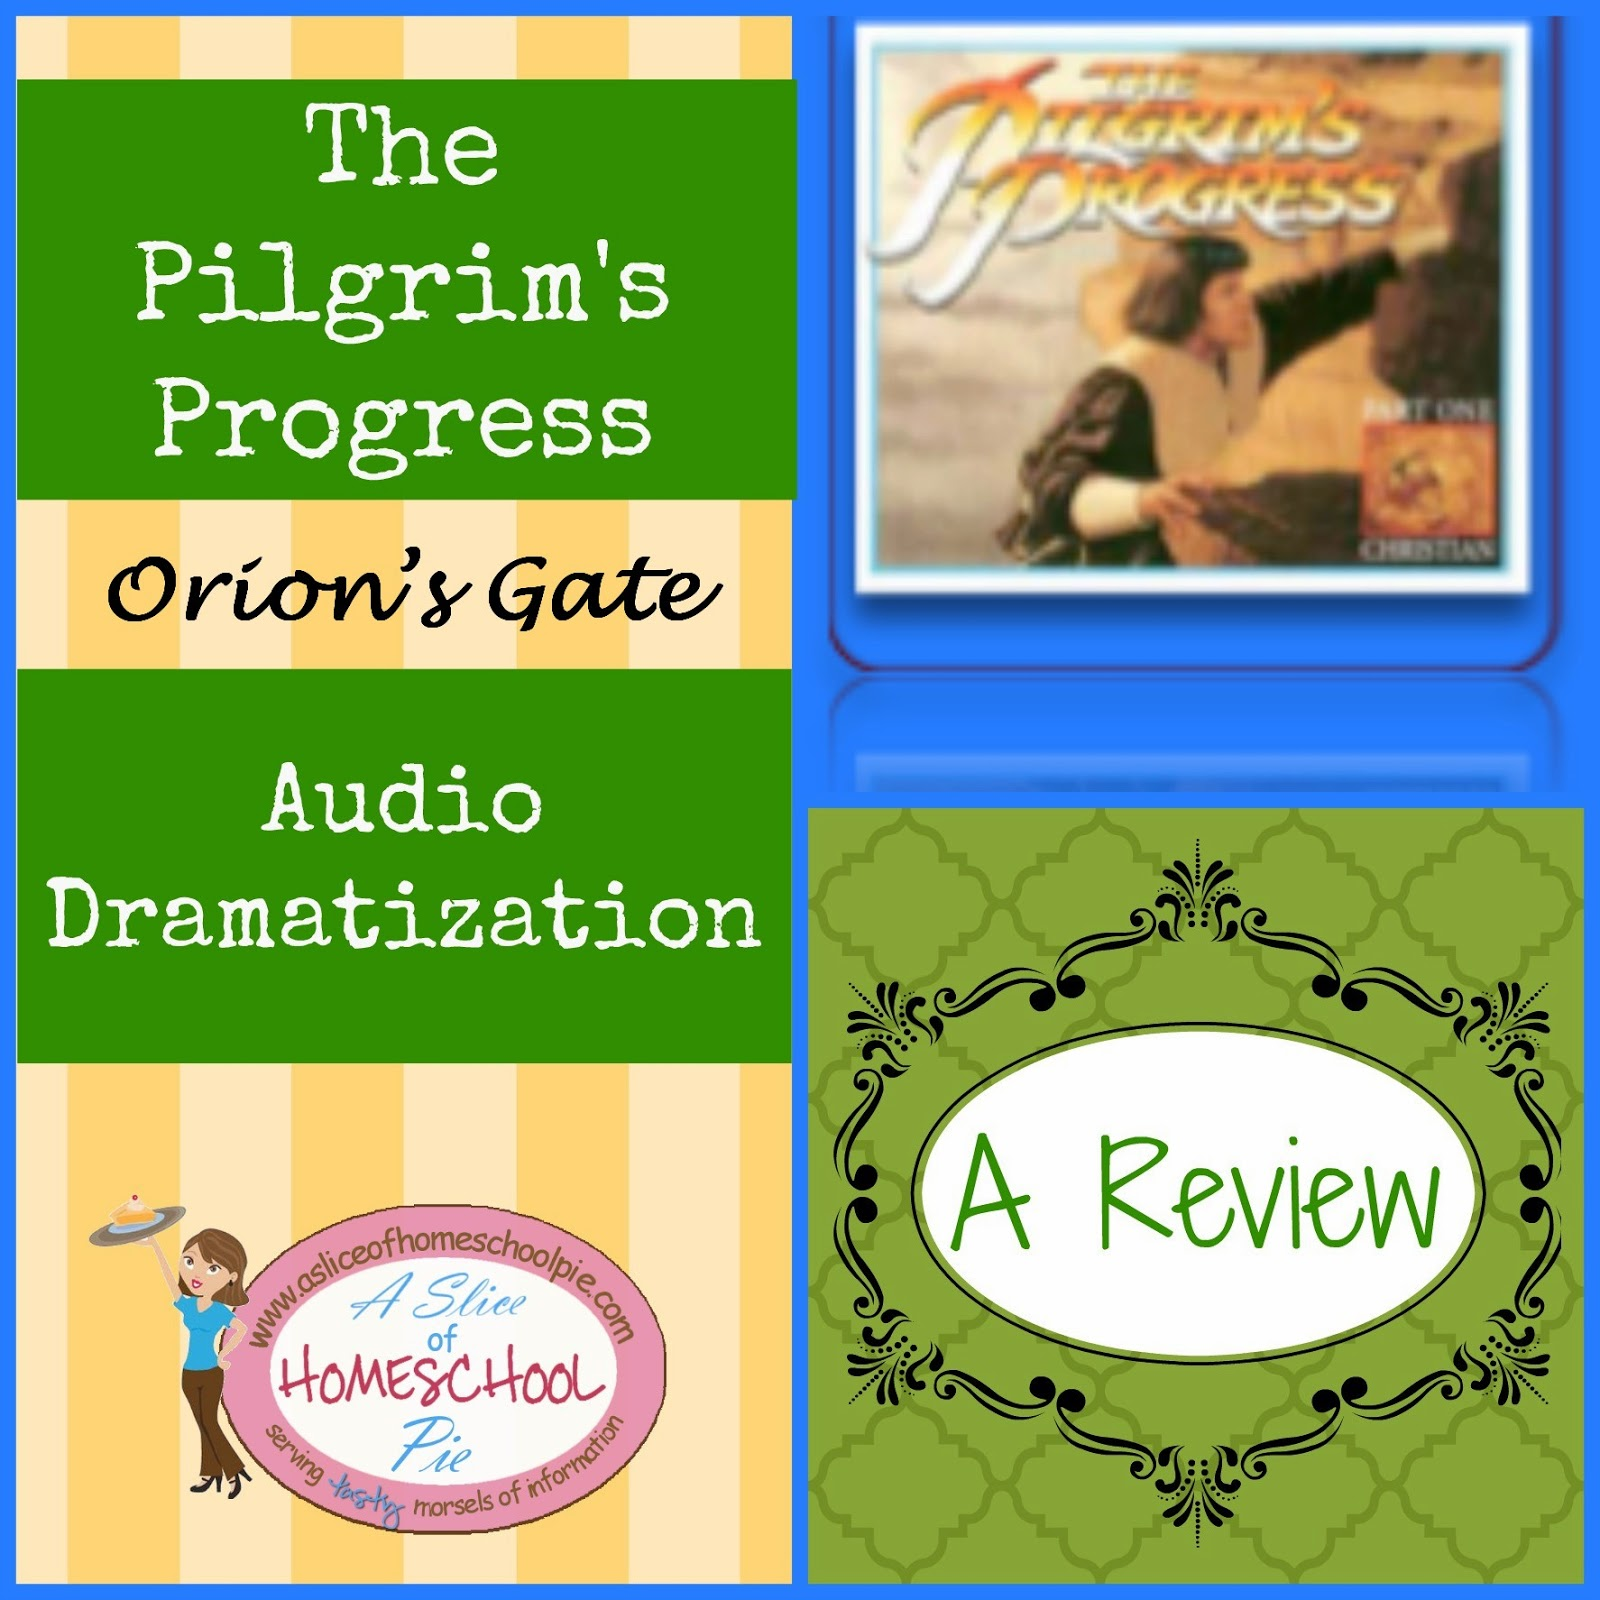 Orion's Gate Audio Dramatization of The Pilgrim's Progress Review by ASliceOfHomeschoolPie.com